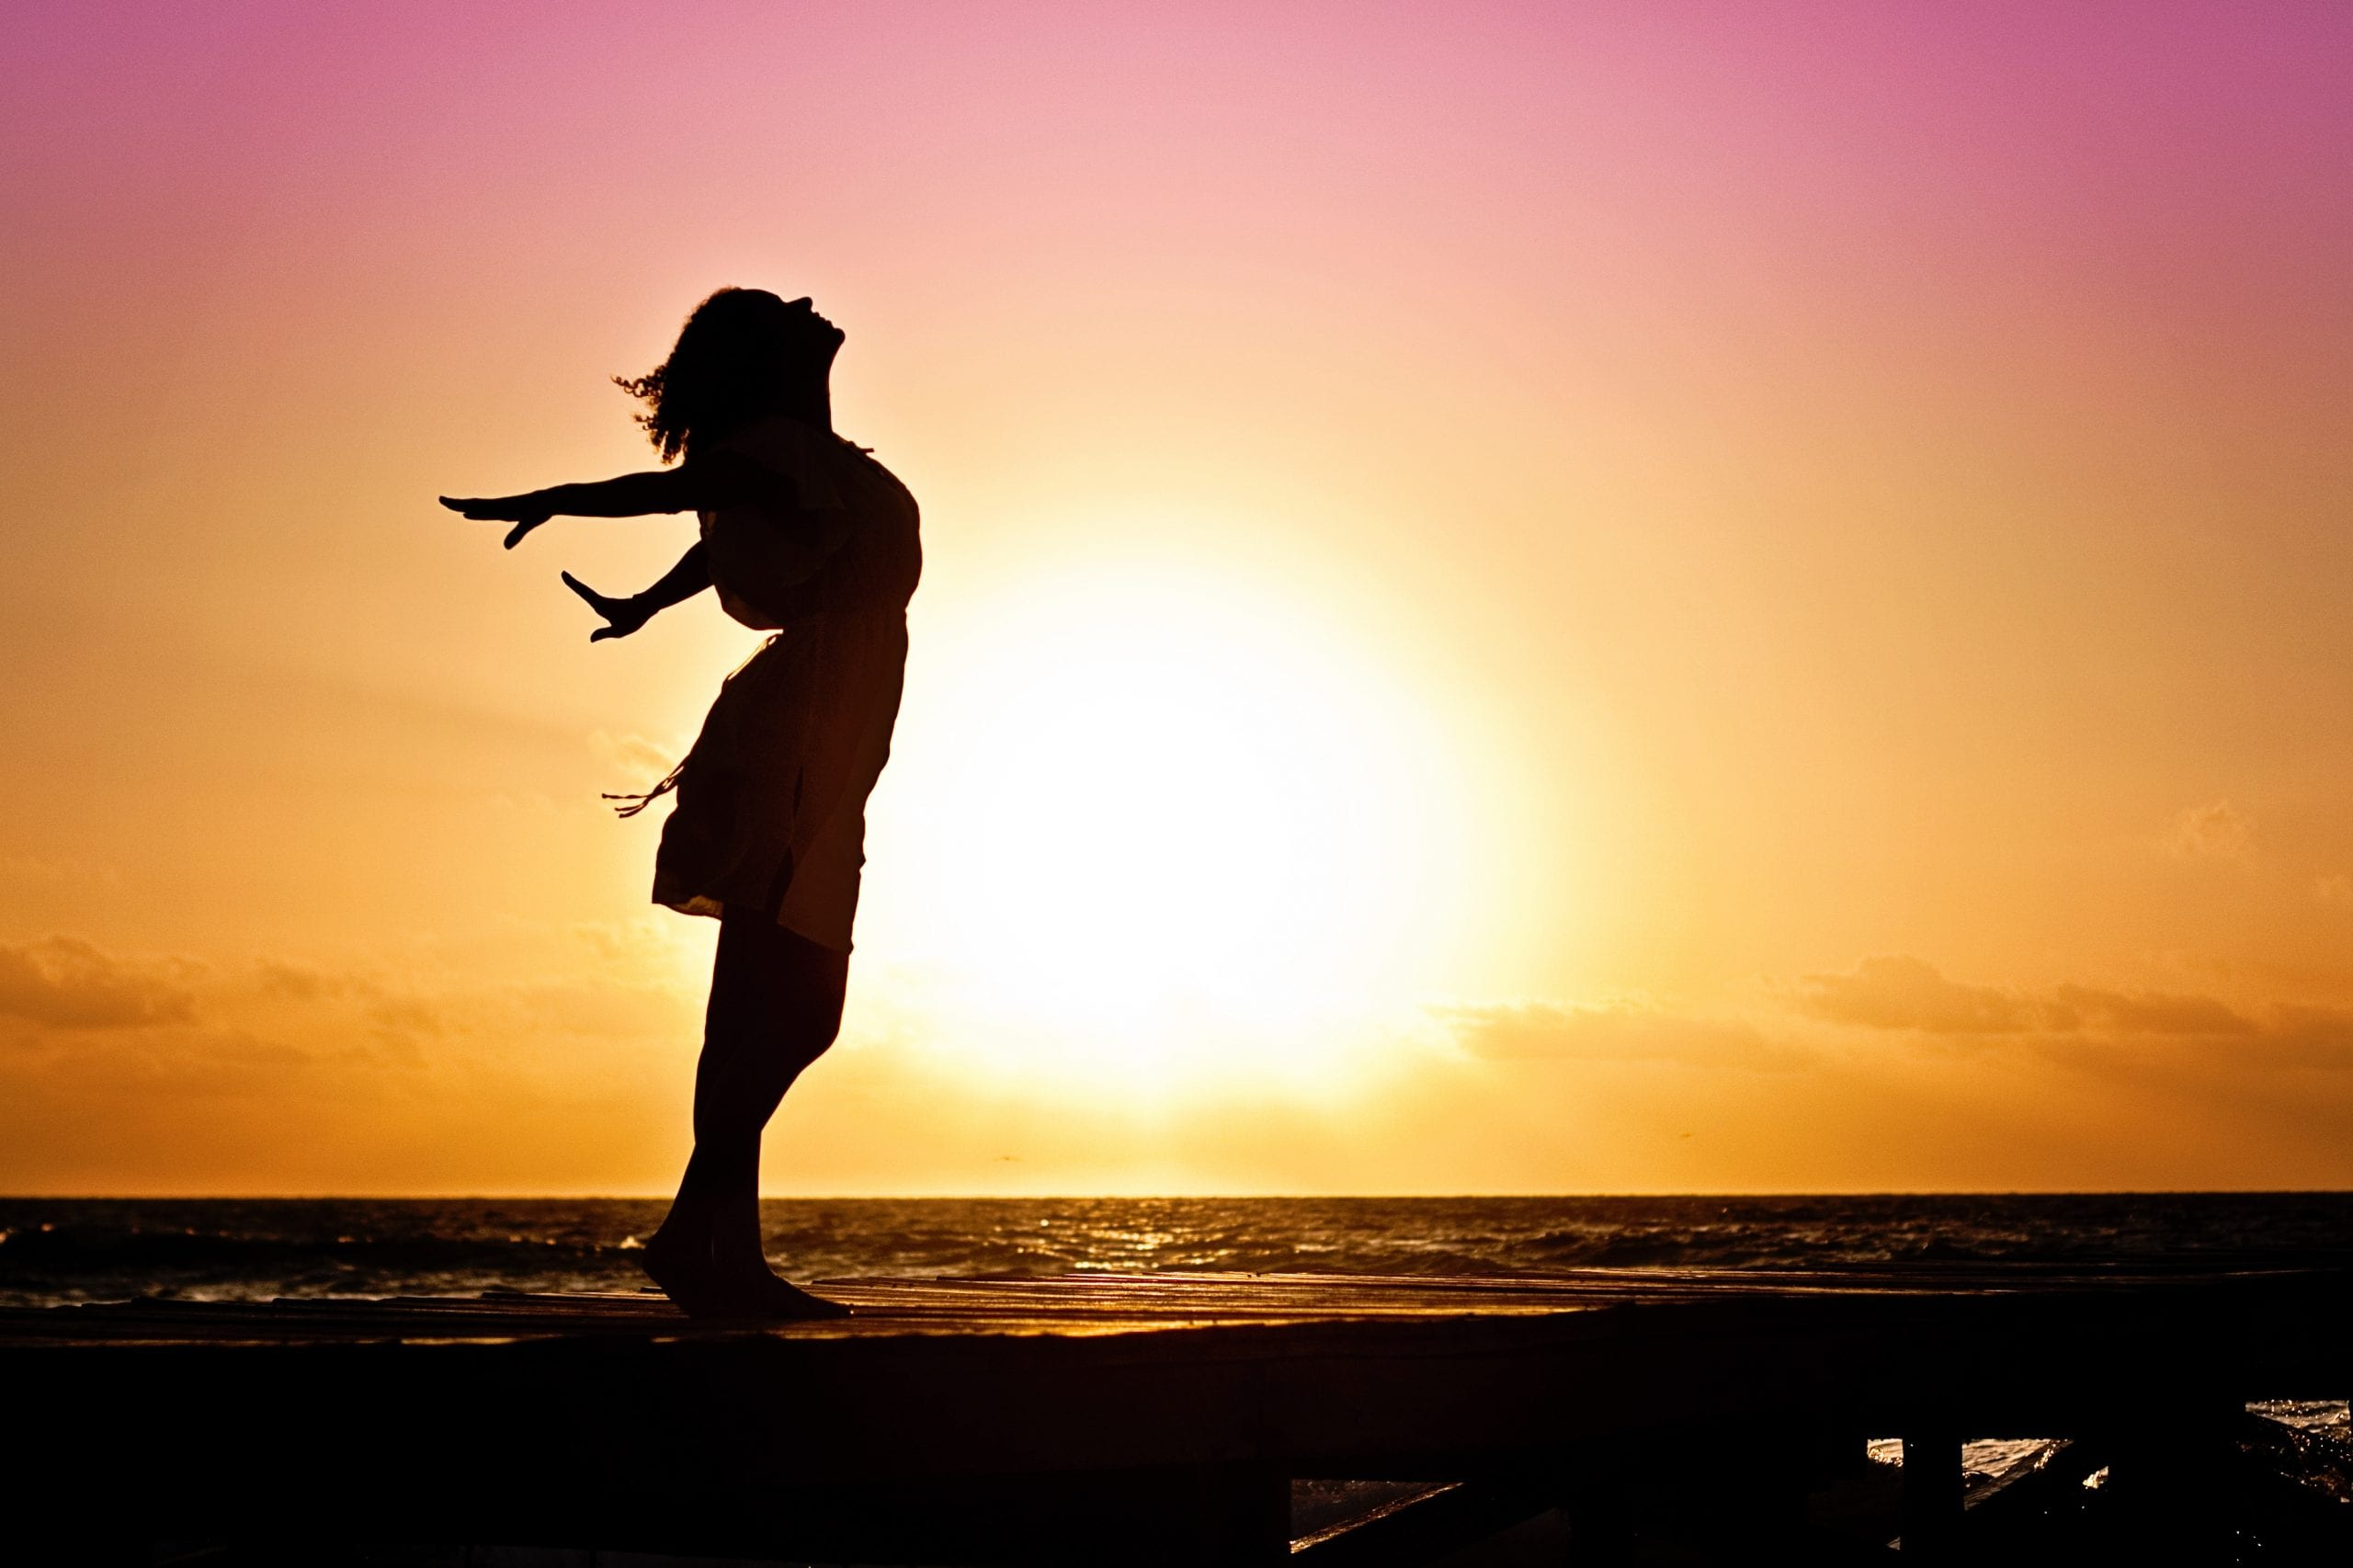 Silhouette of Woman with arms stretched - free and happy